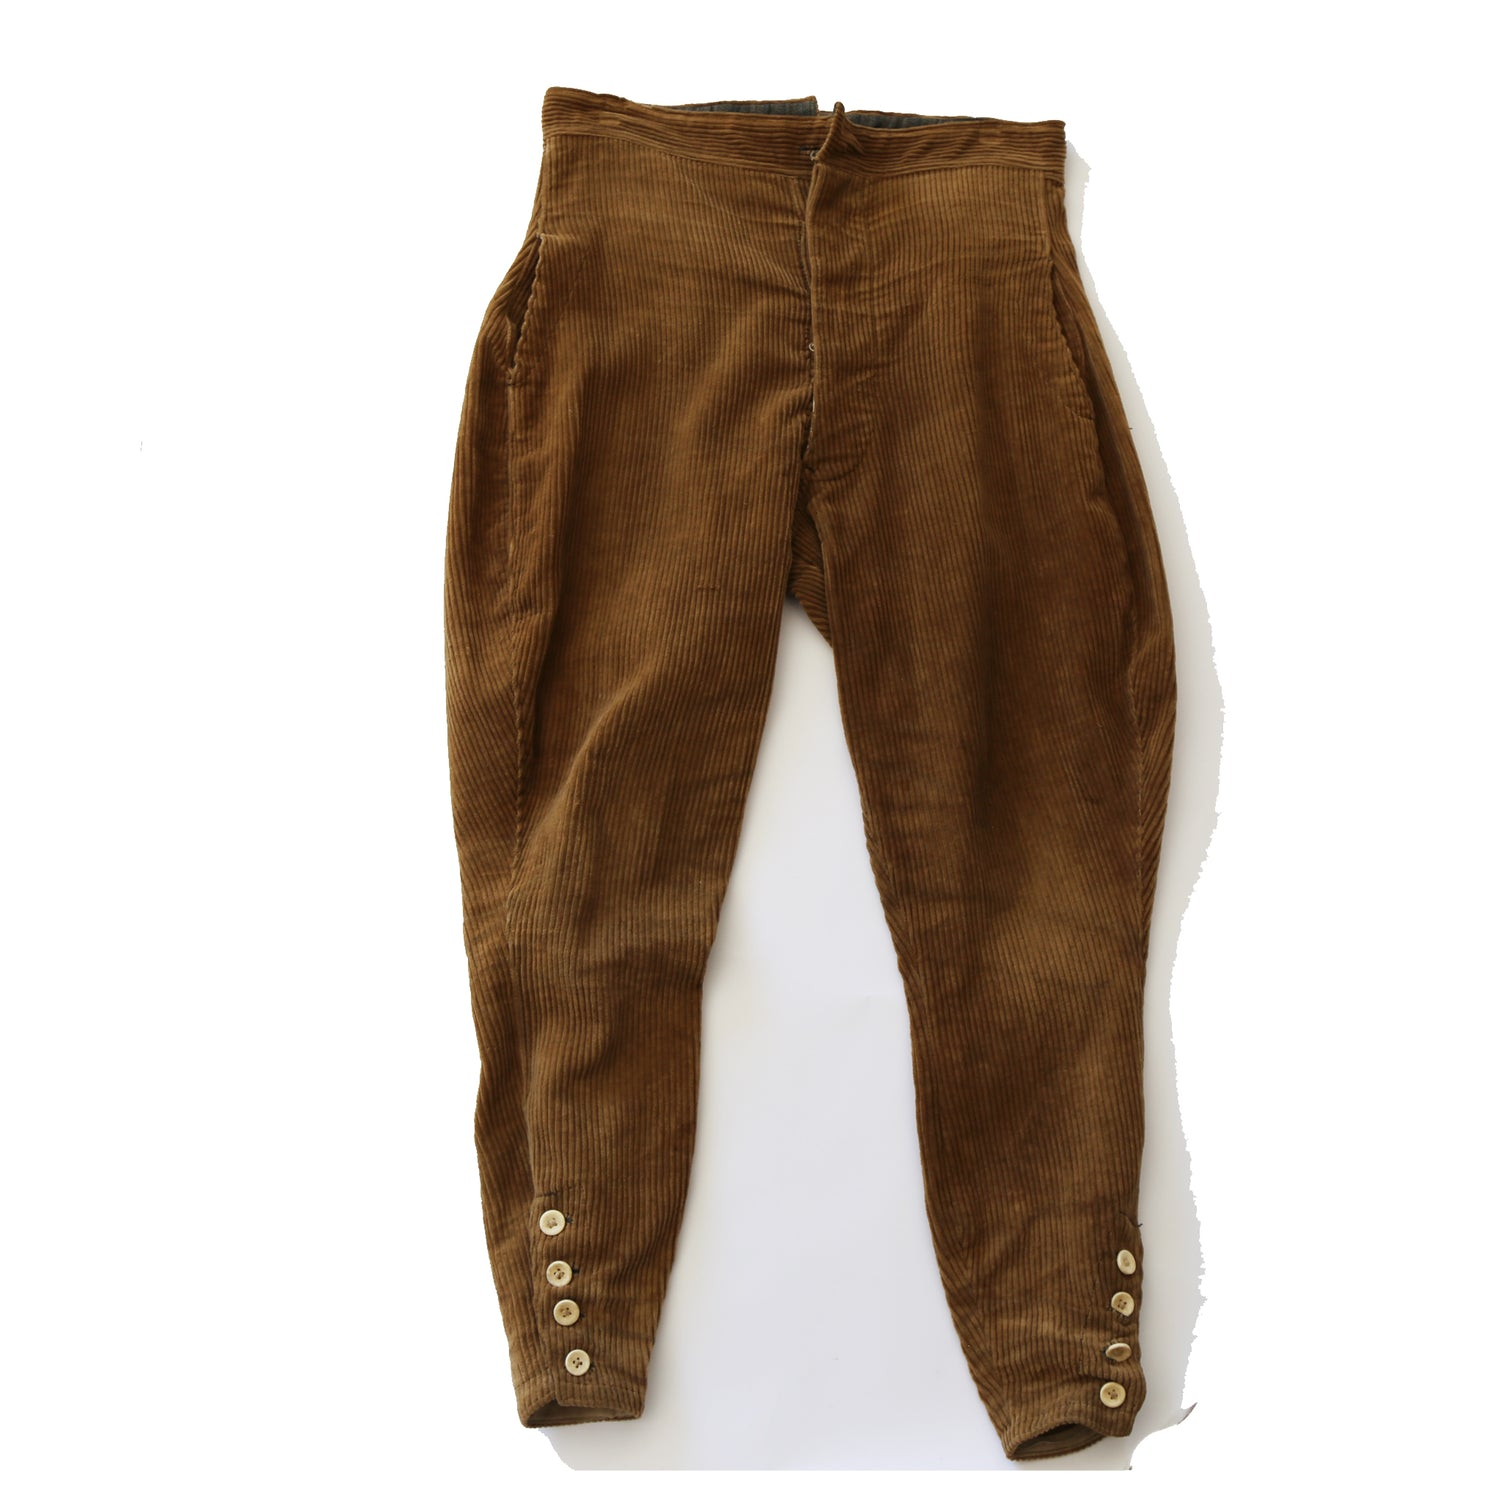 Japanese Wide Wale Cords Riding Pants